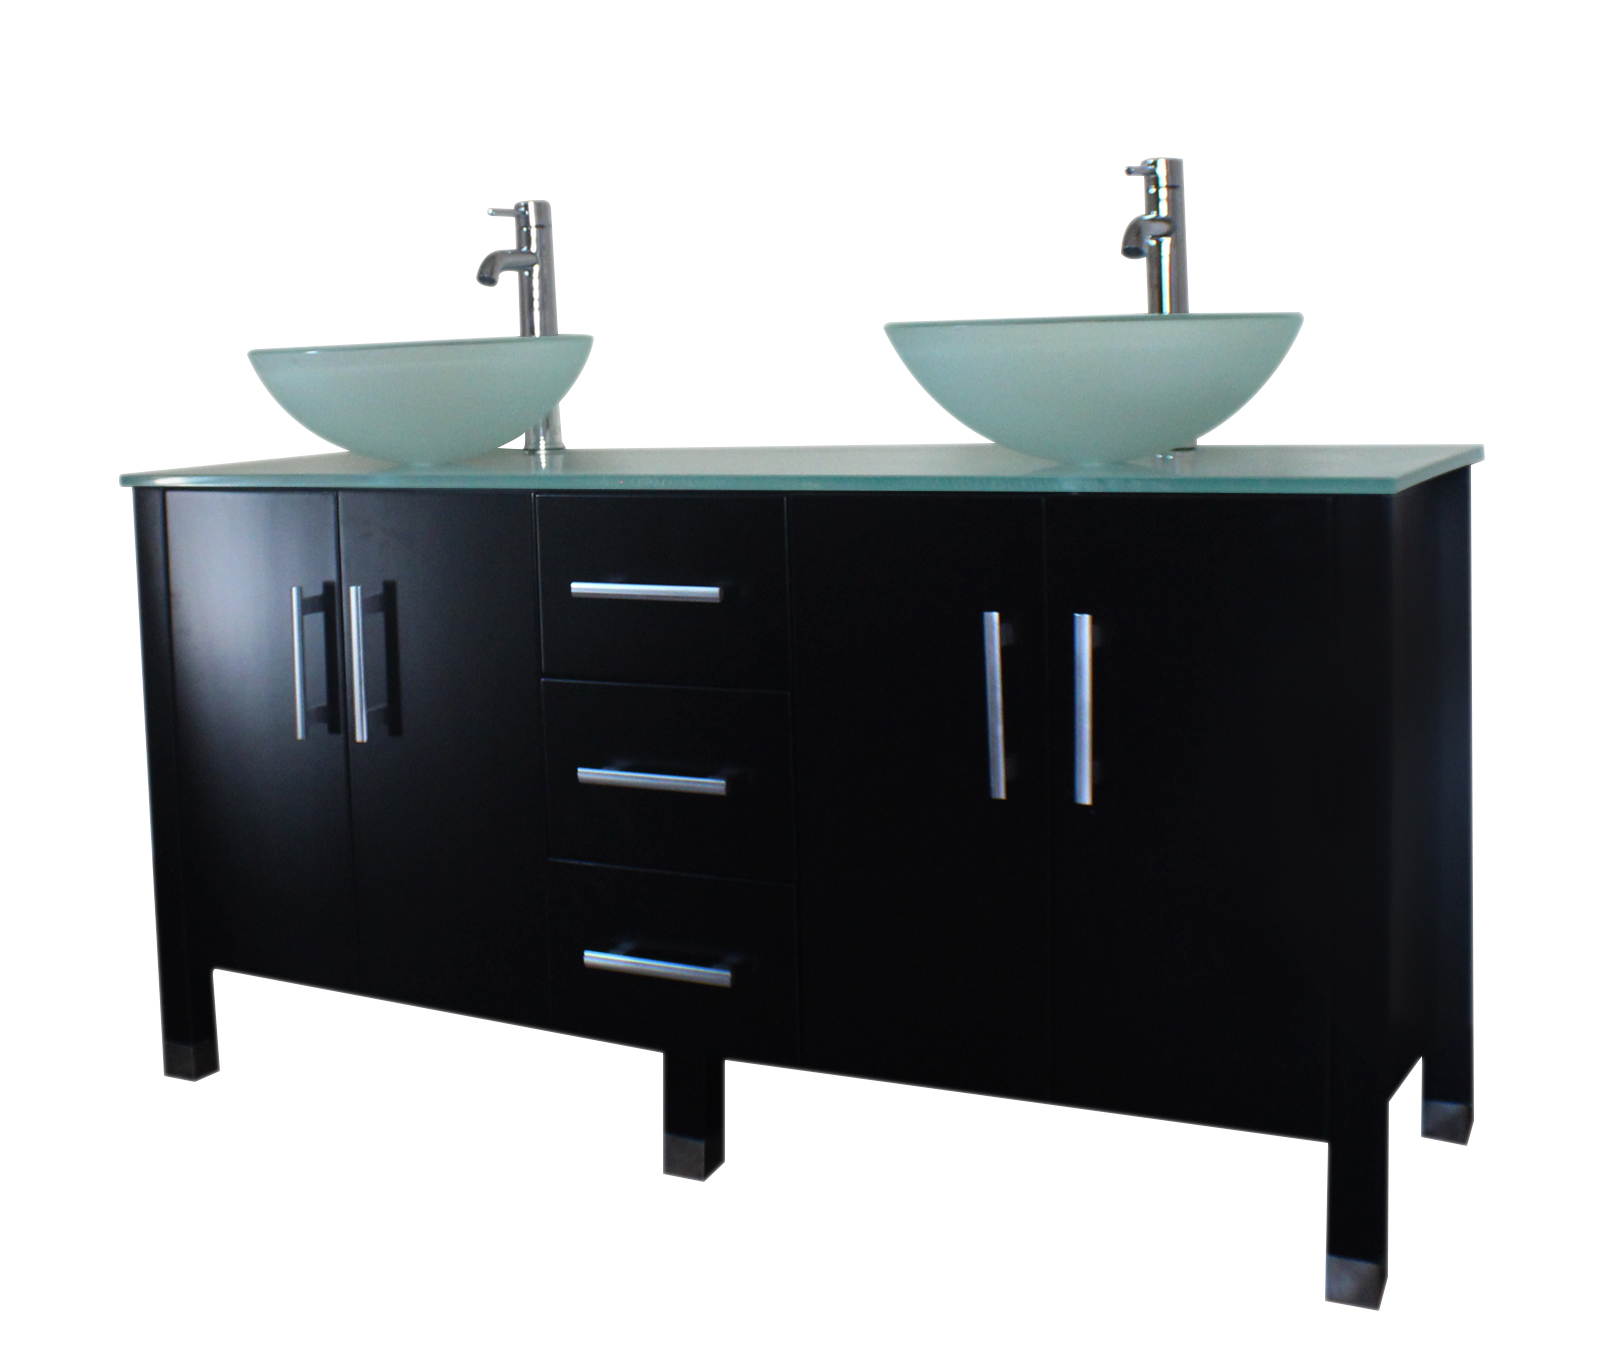 double sink vanity, espresso bathroom vanity set, tempered glass counter top, tempered glass vessel sink, wood vanity set,